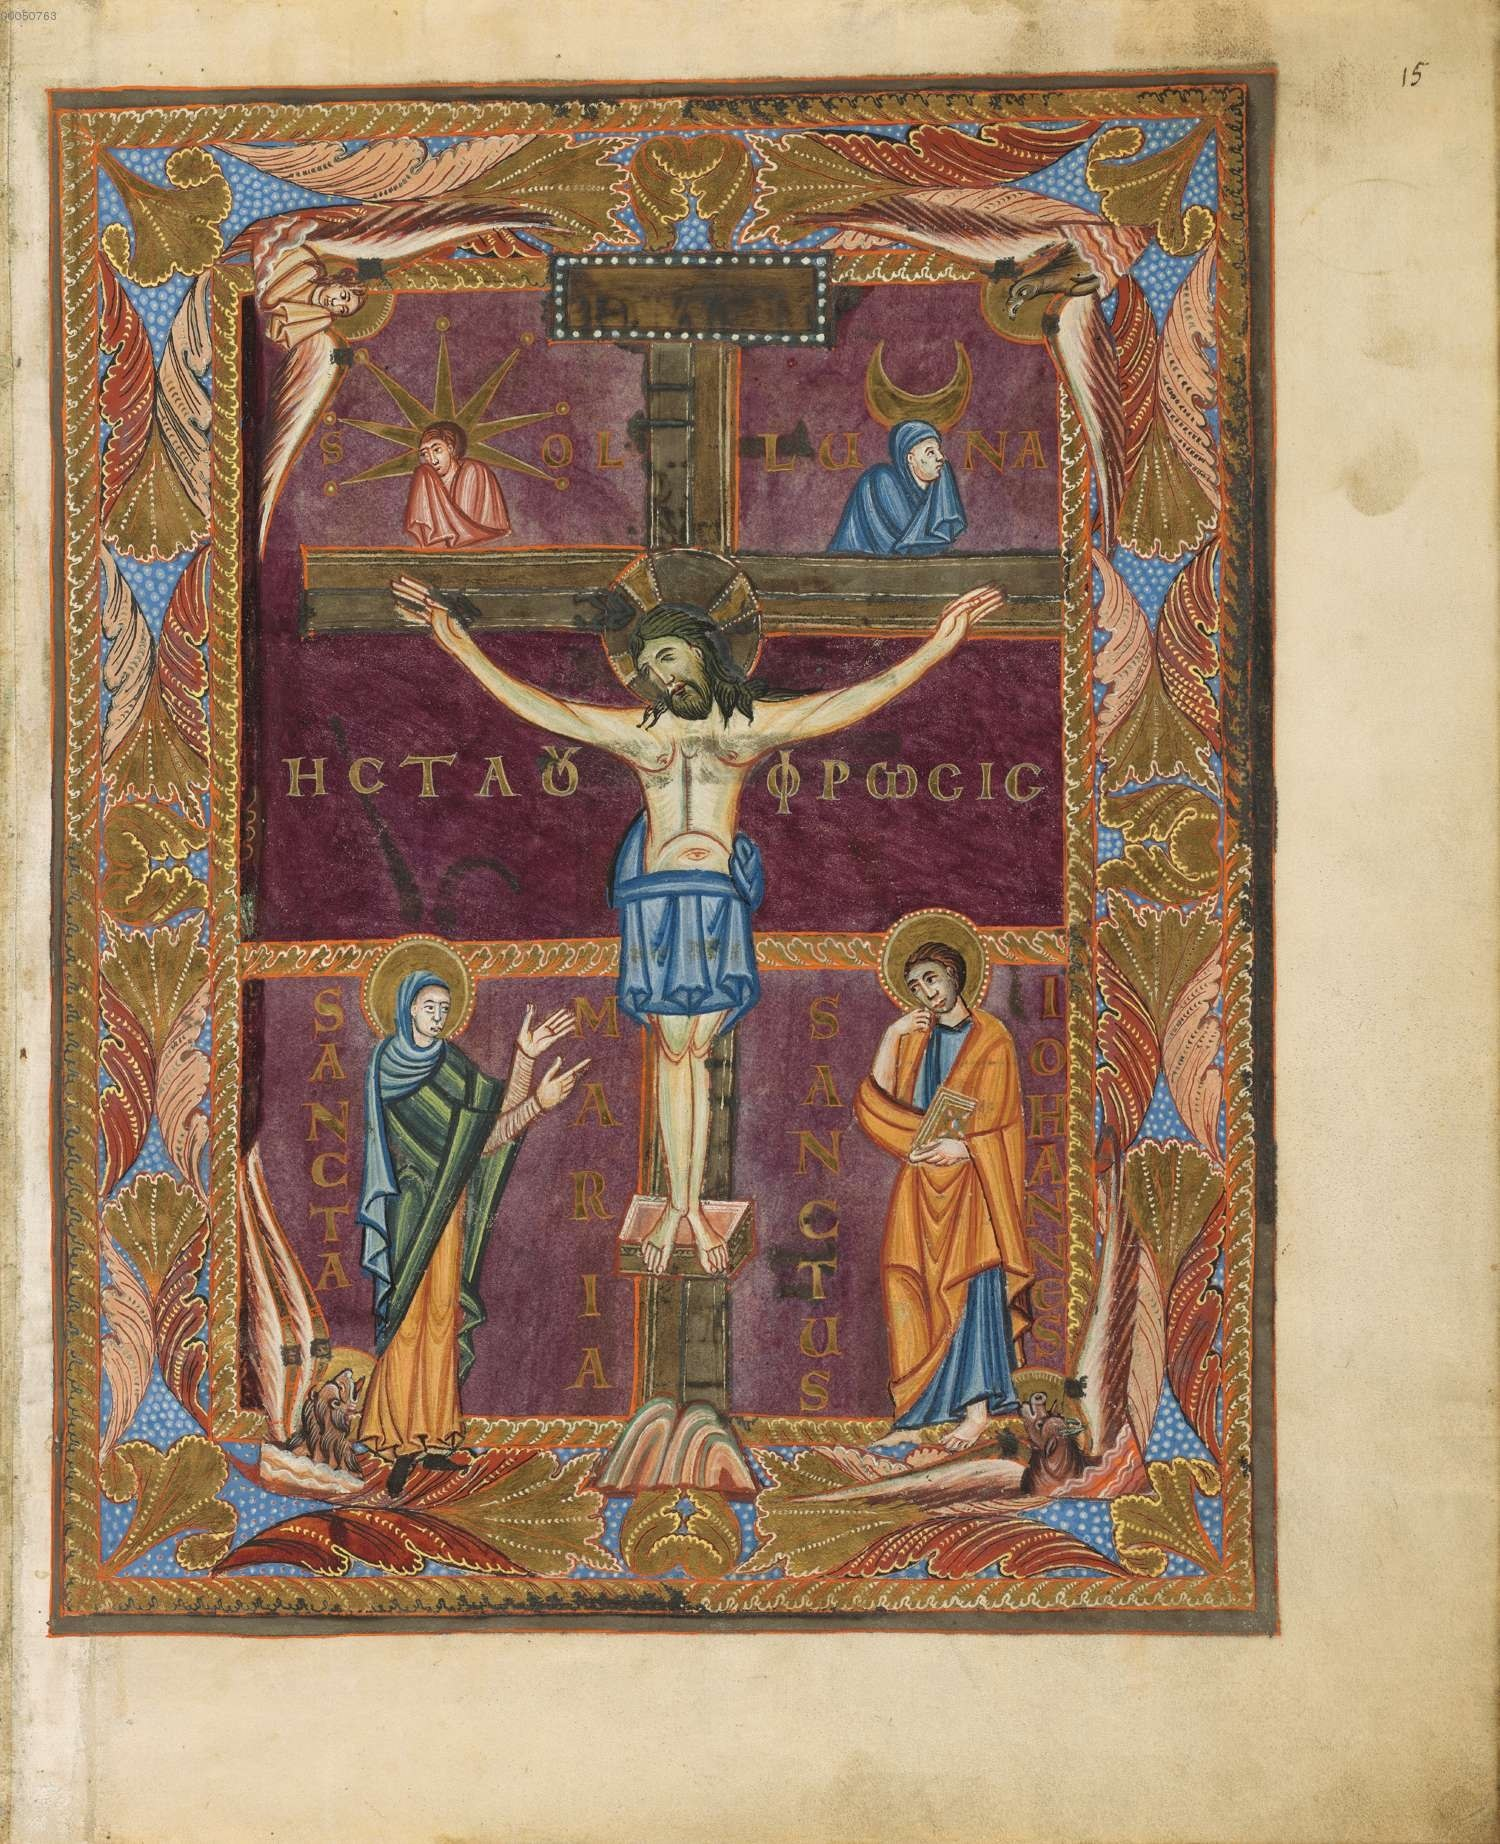 river jordan victory christ anthropomorphic images sun moon crucifixion iconography